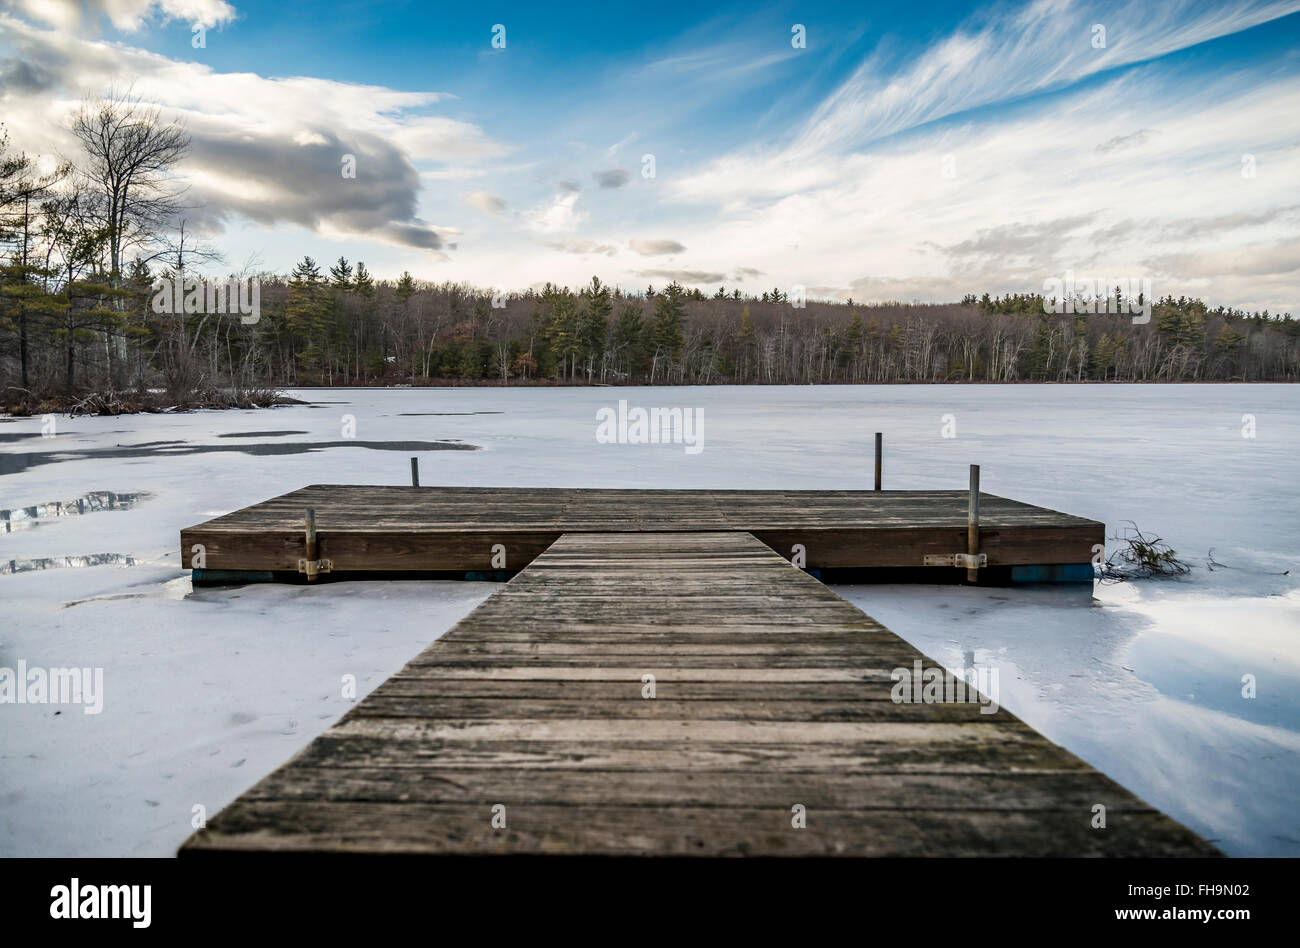 View of floating pier on a iced lake - Stock Image